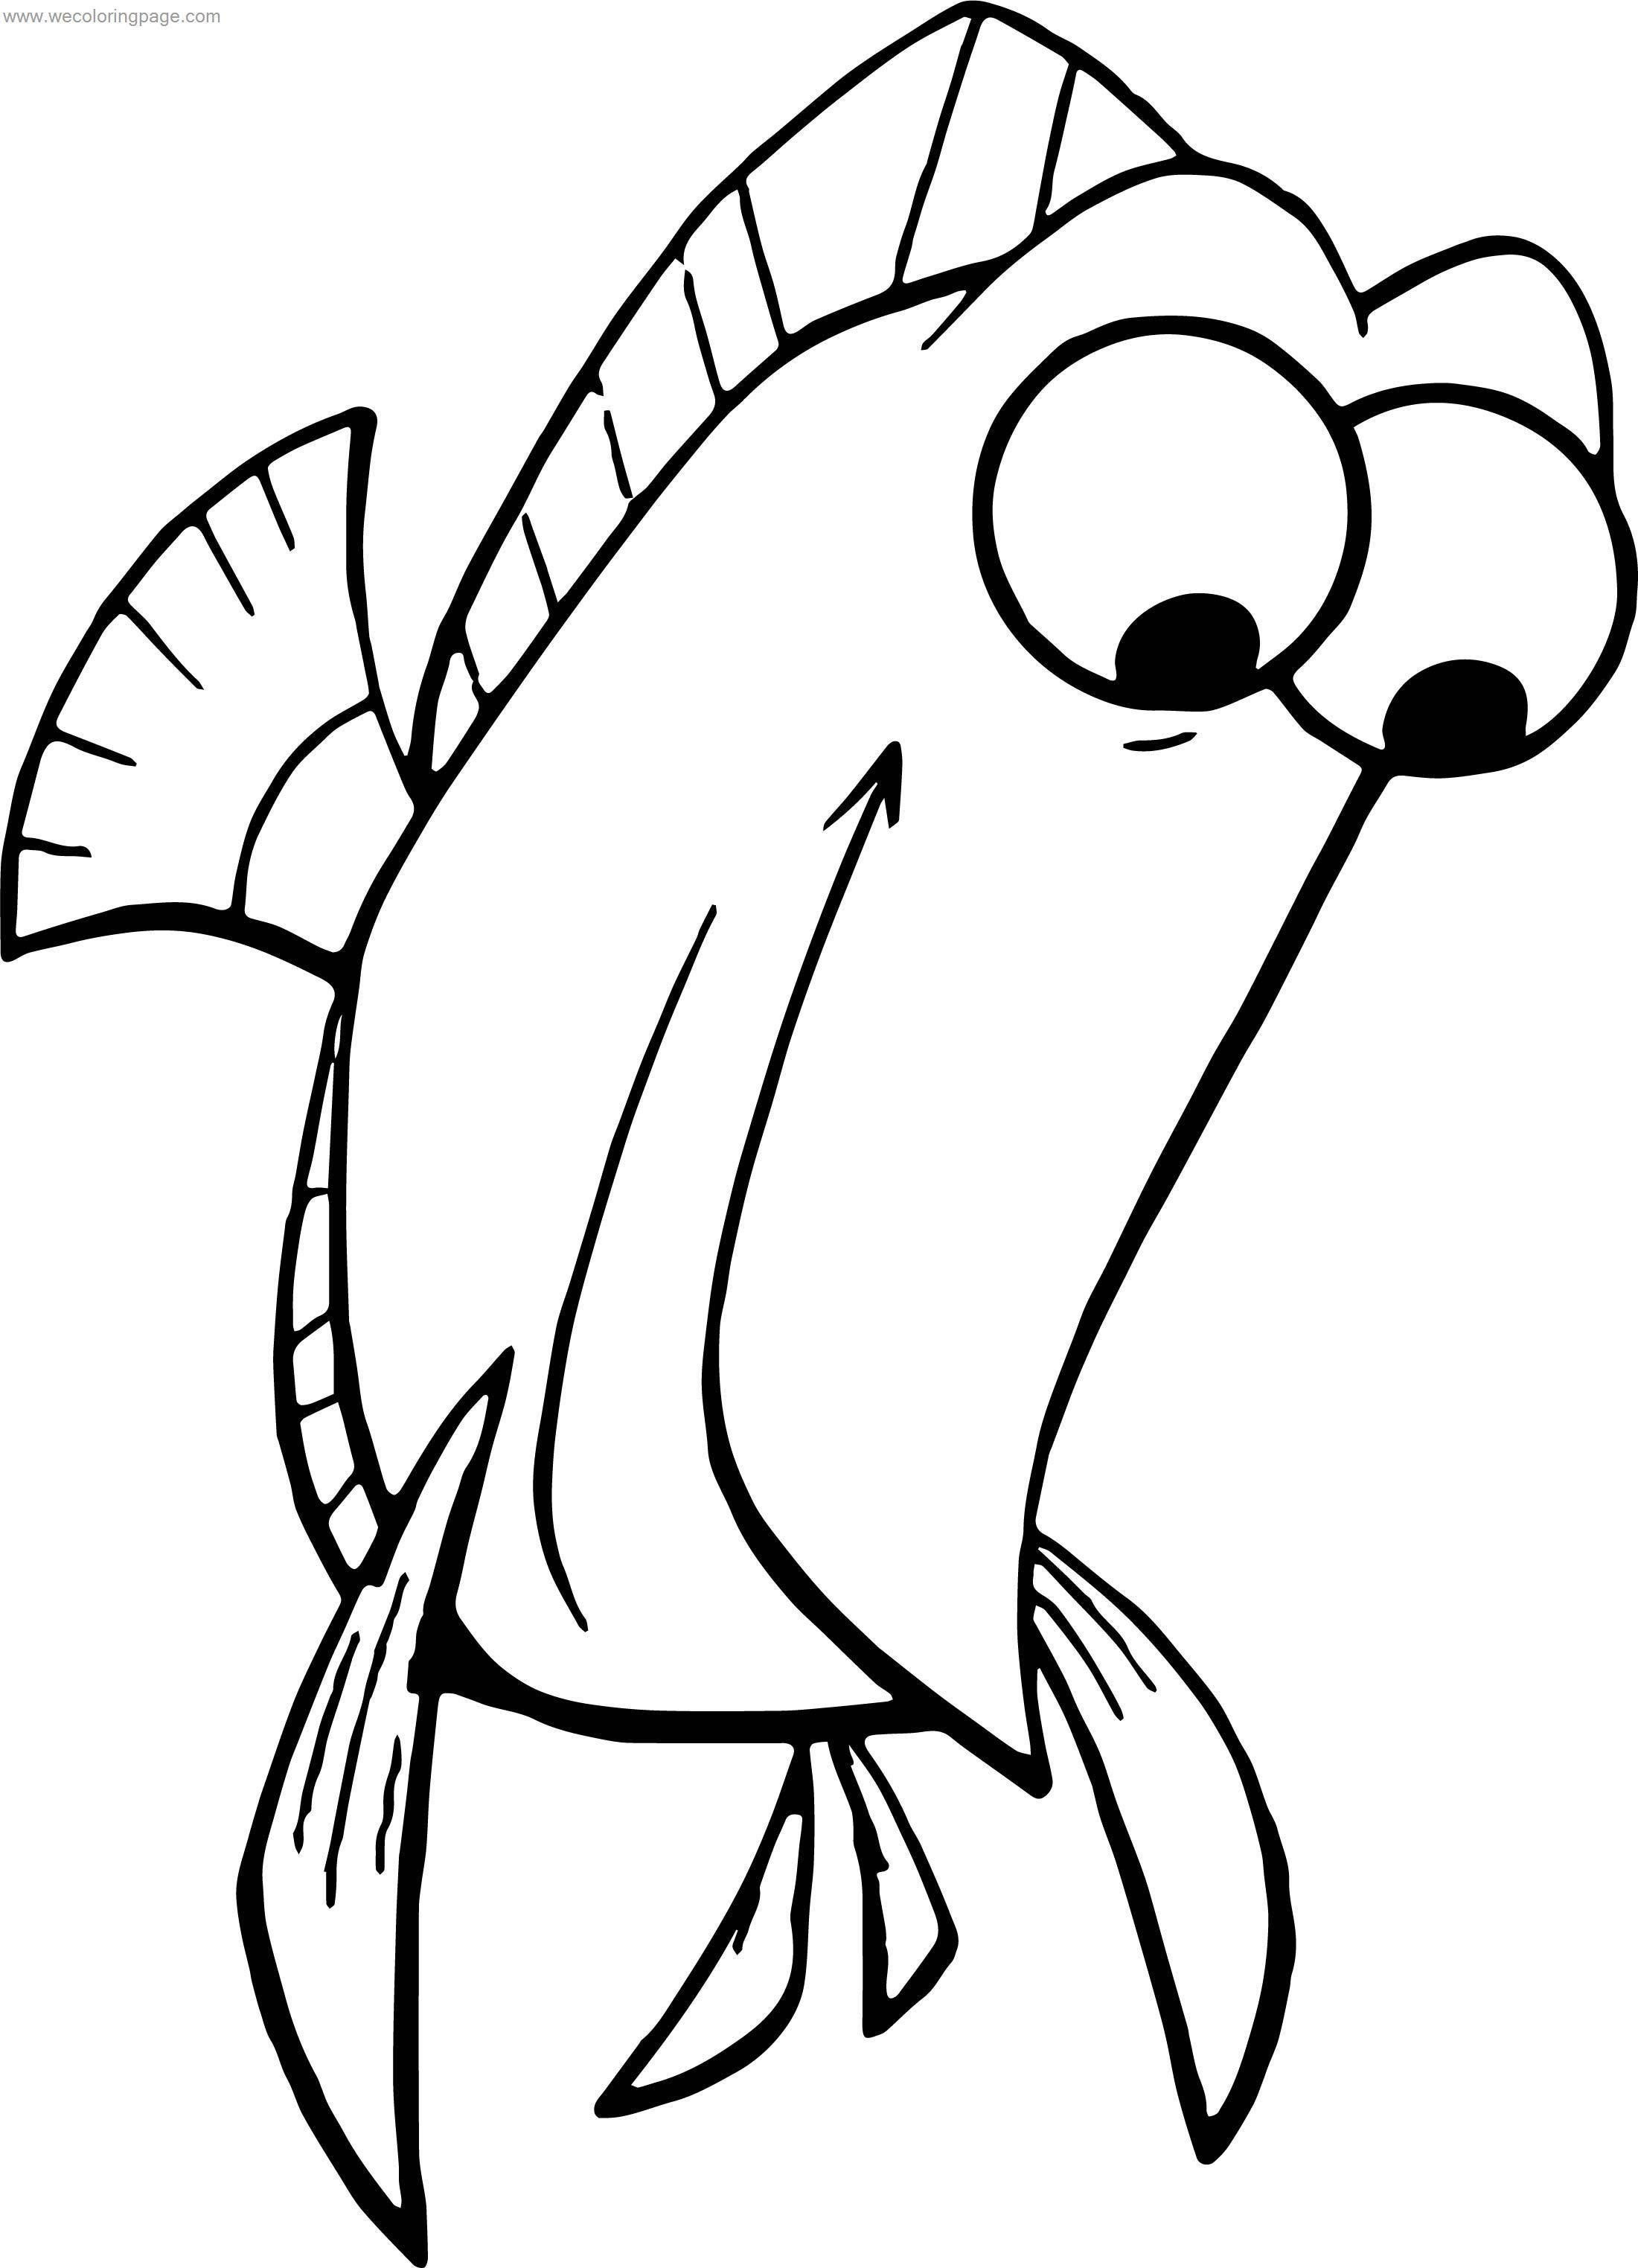 Disney Finding Nemo Tall Fish Coloring Pages ...